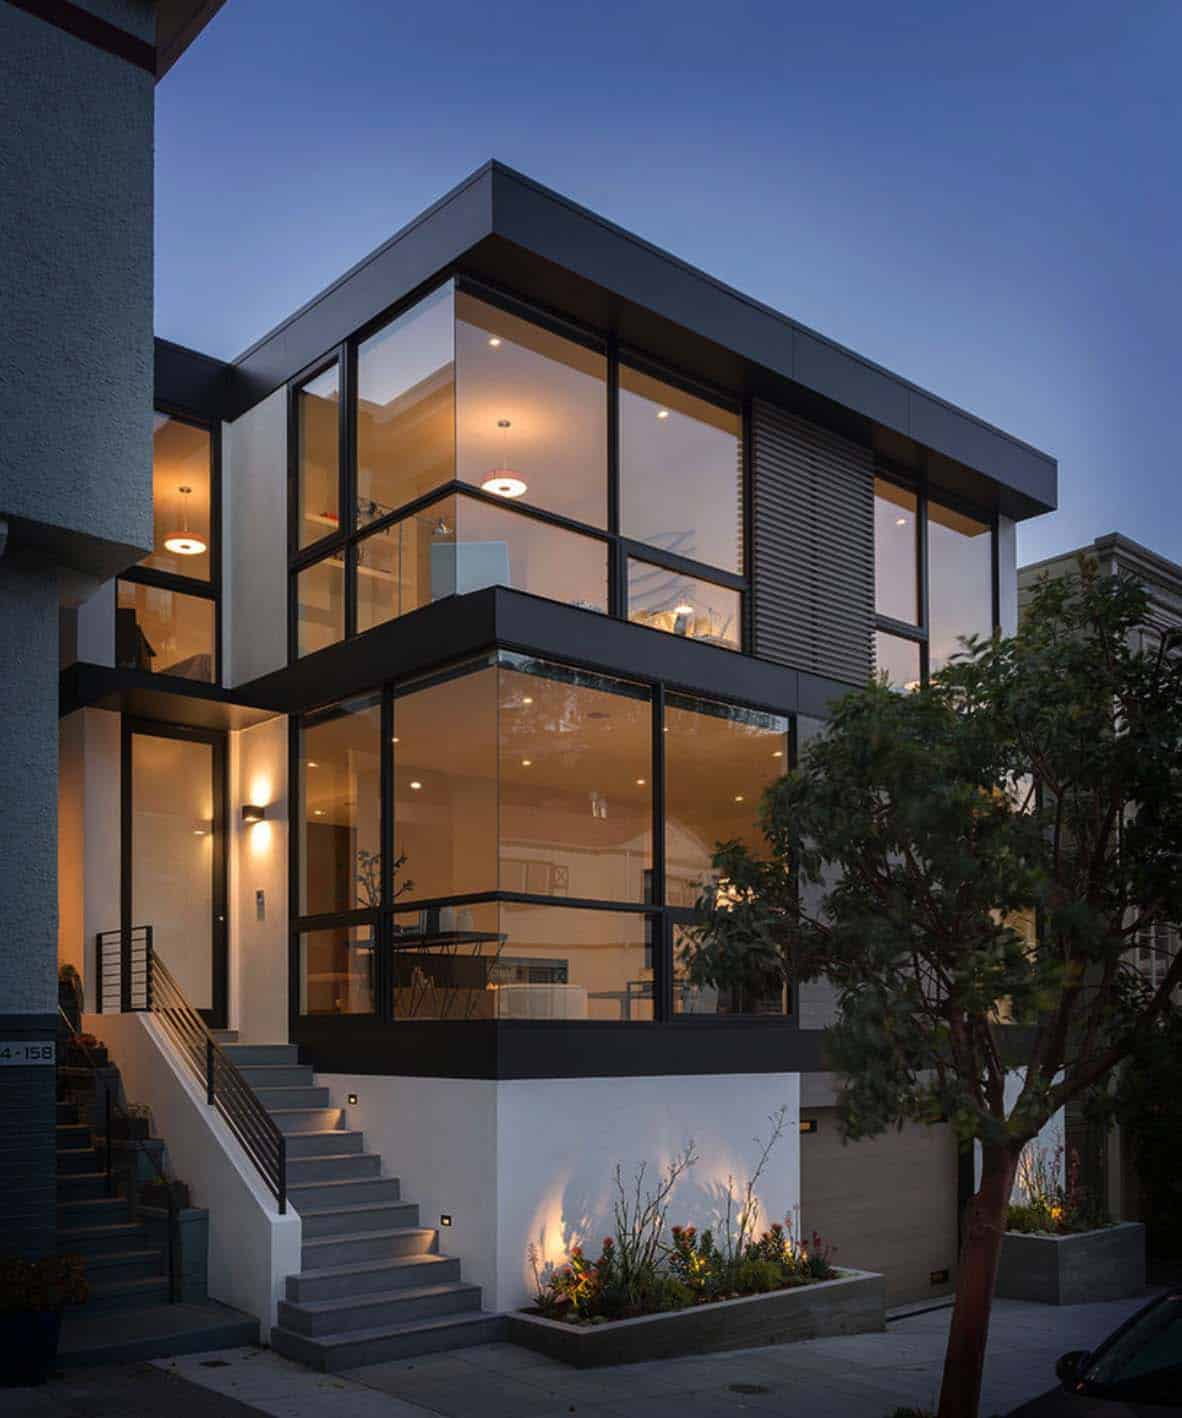 Modern Architecture Home Design: Sleek And Contemporary Four-level Home In San Francisco